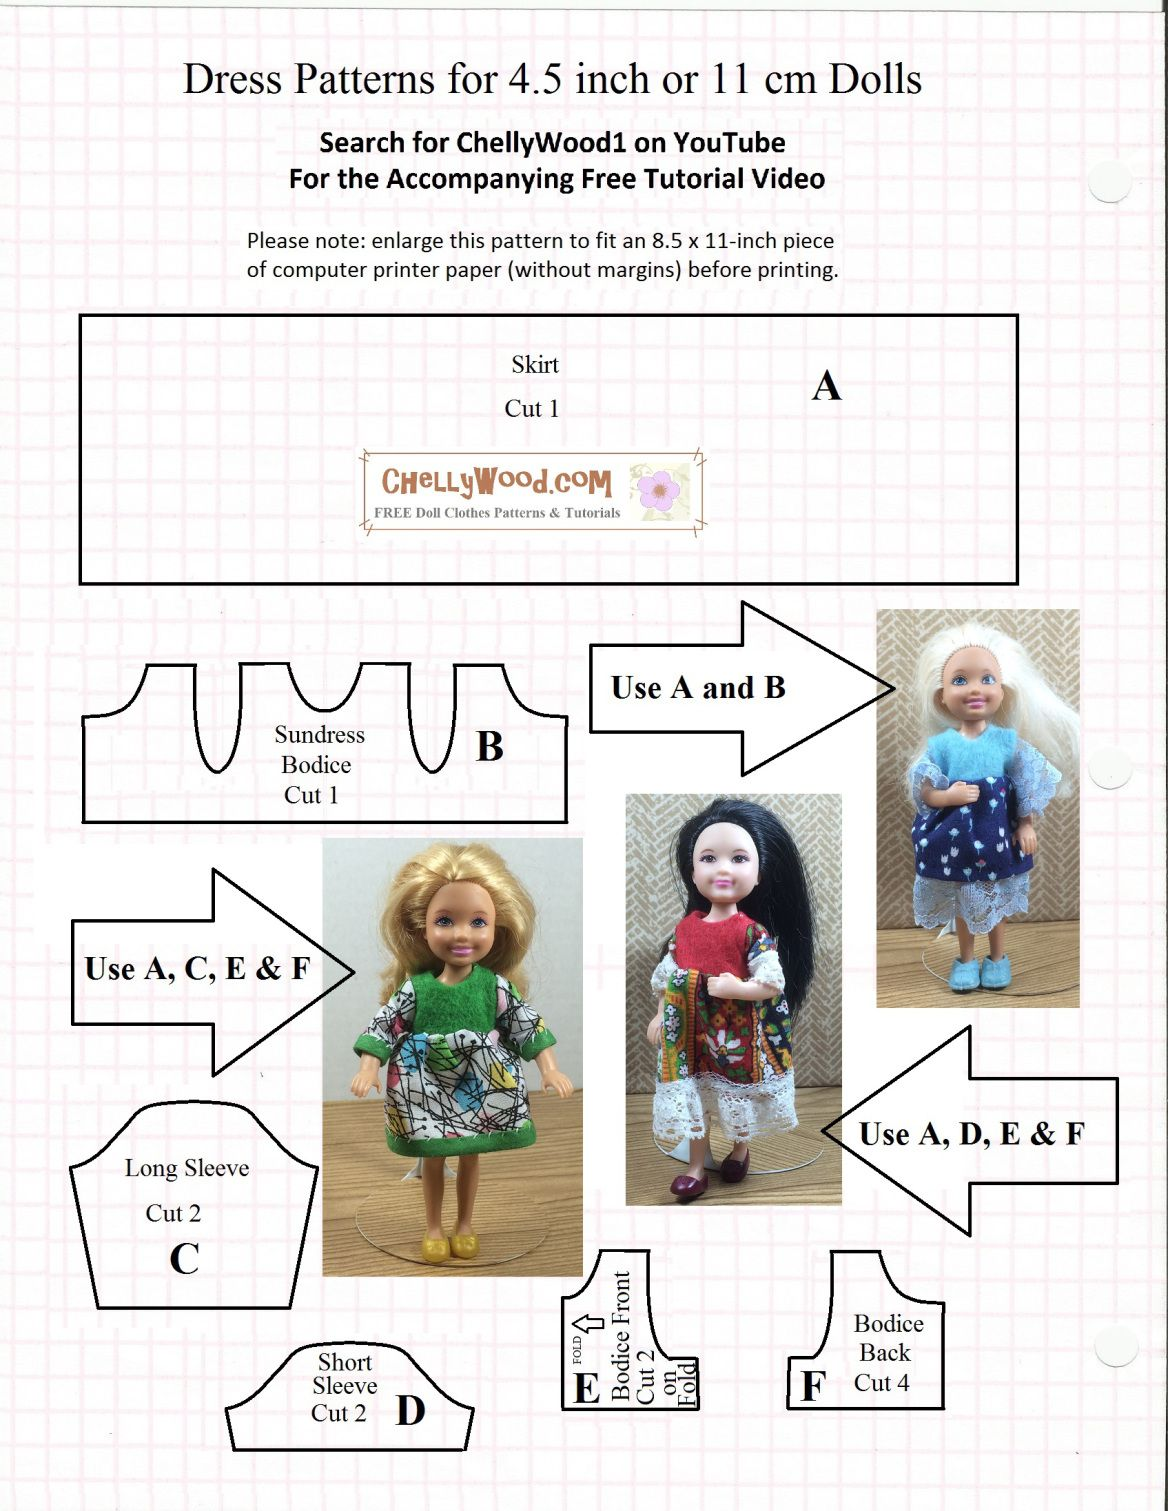 Image Shows A Printable Sewing Pattern With Photographs Of Three Of